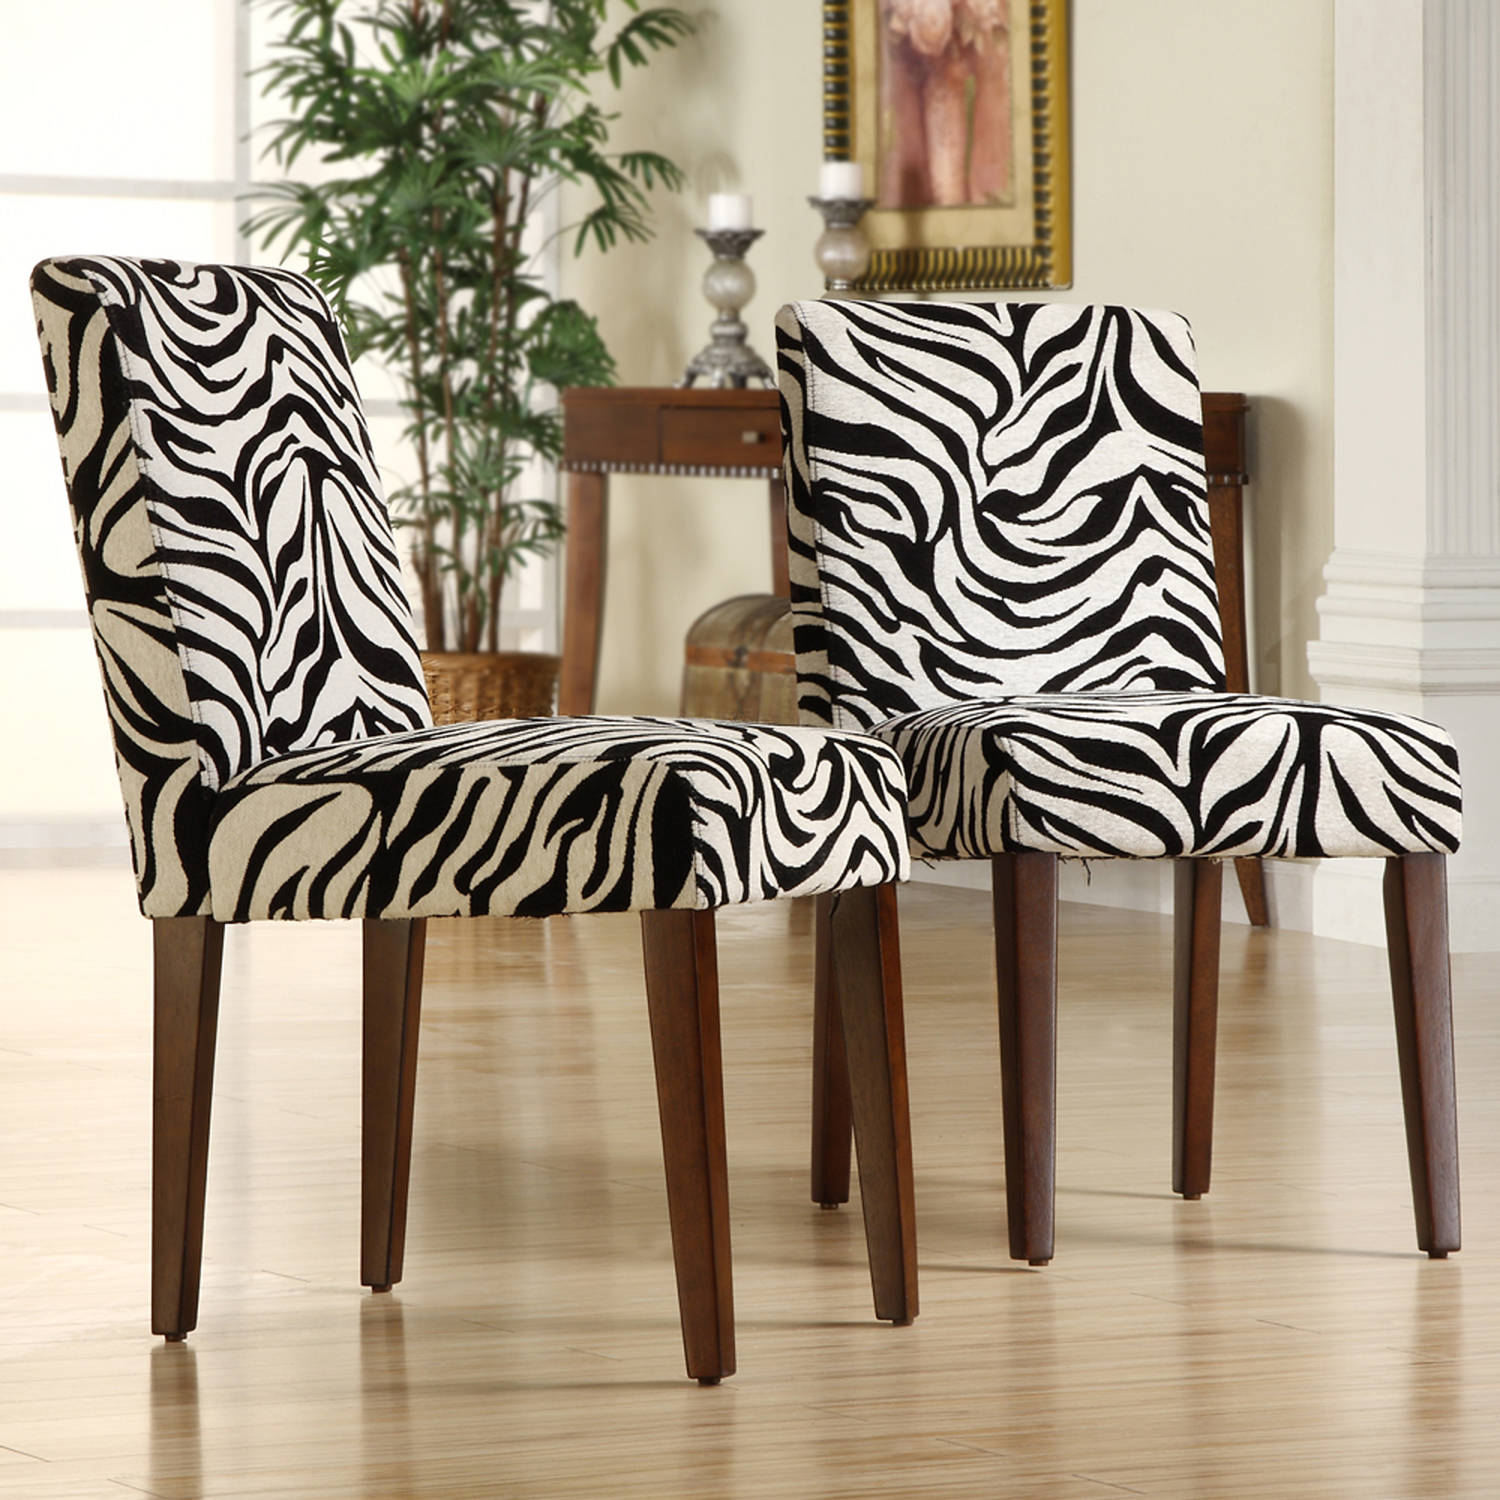 Top Line Noah Zebra Print Chair, Set of 2